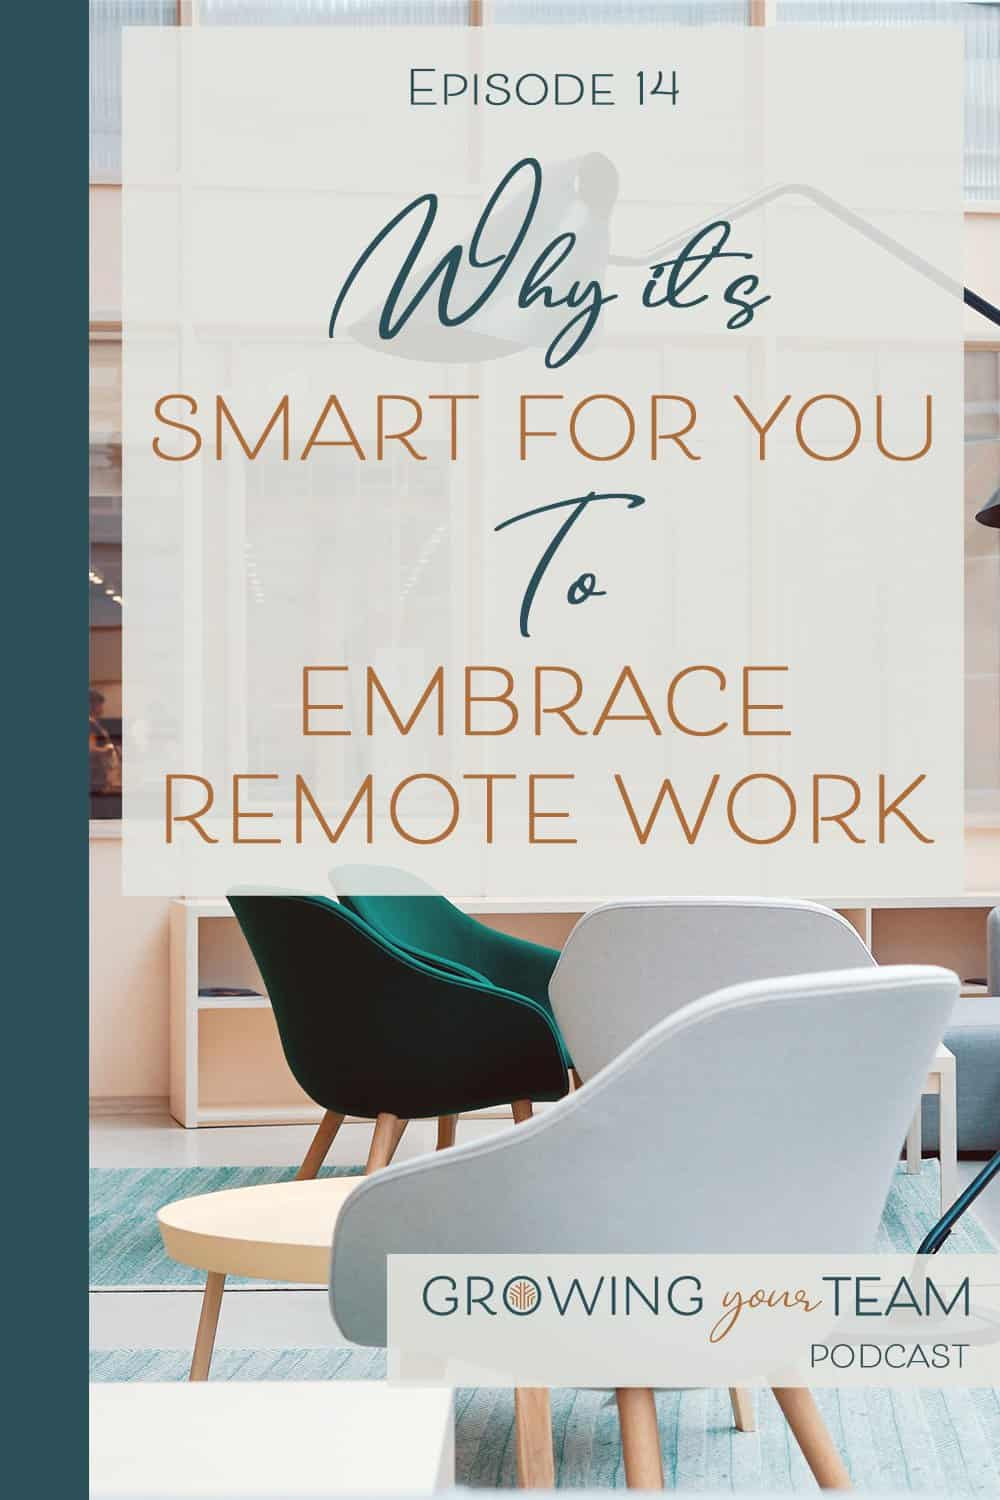 Remote Work, Growing You Team Podcast, Jamie Van Cuyk, Small Business